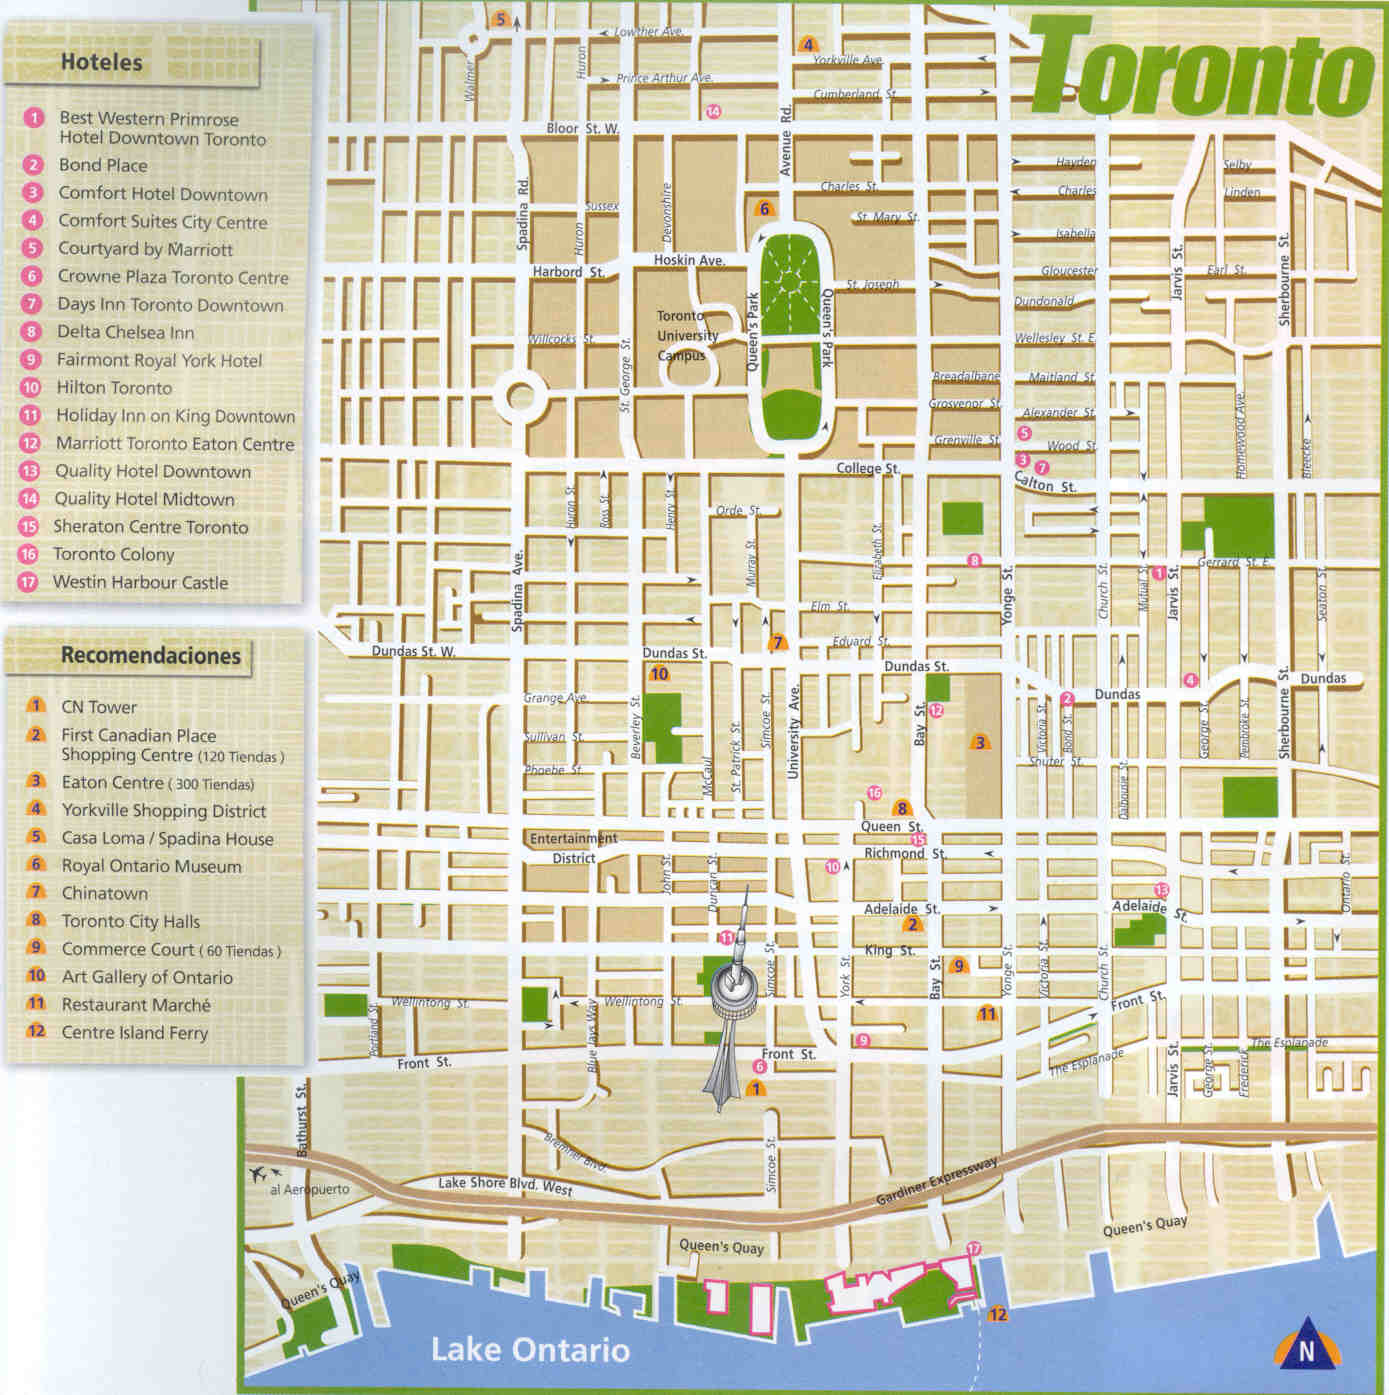 Maps Toronto.Large Toronto Maps For Free Download And Print High Resolution And